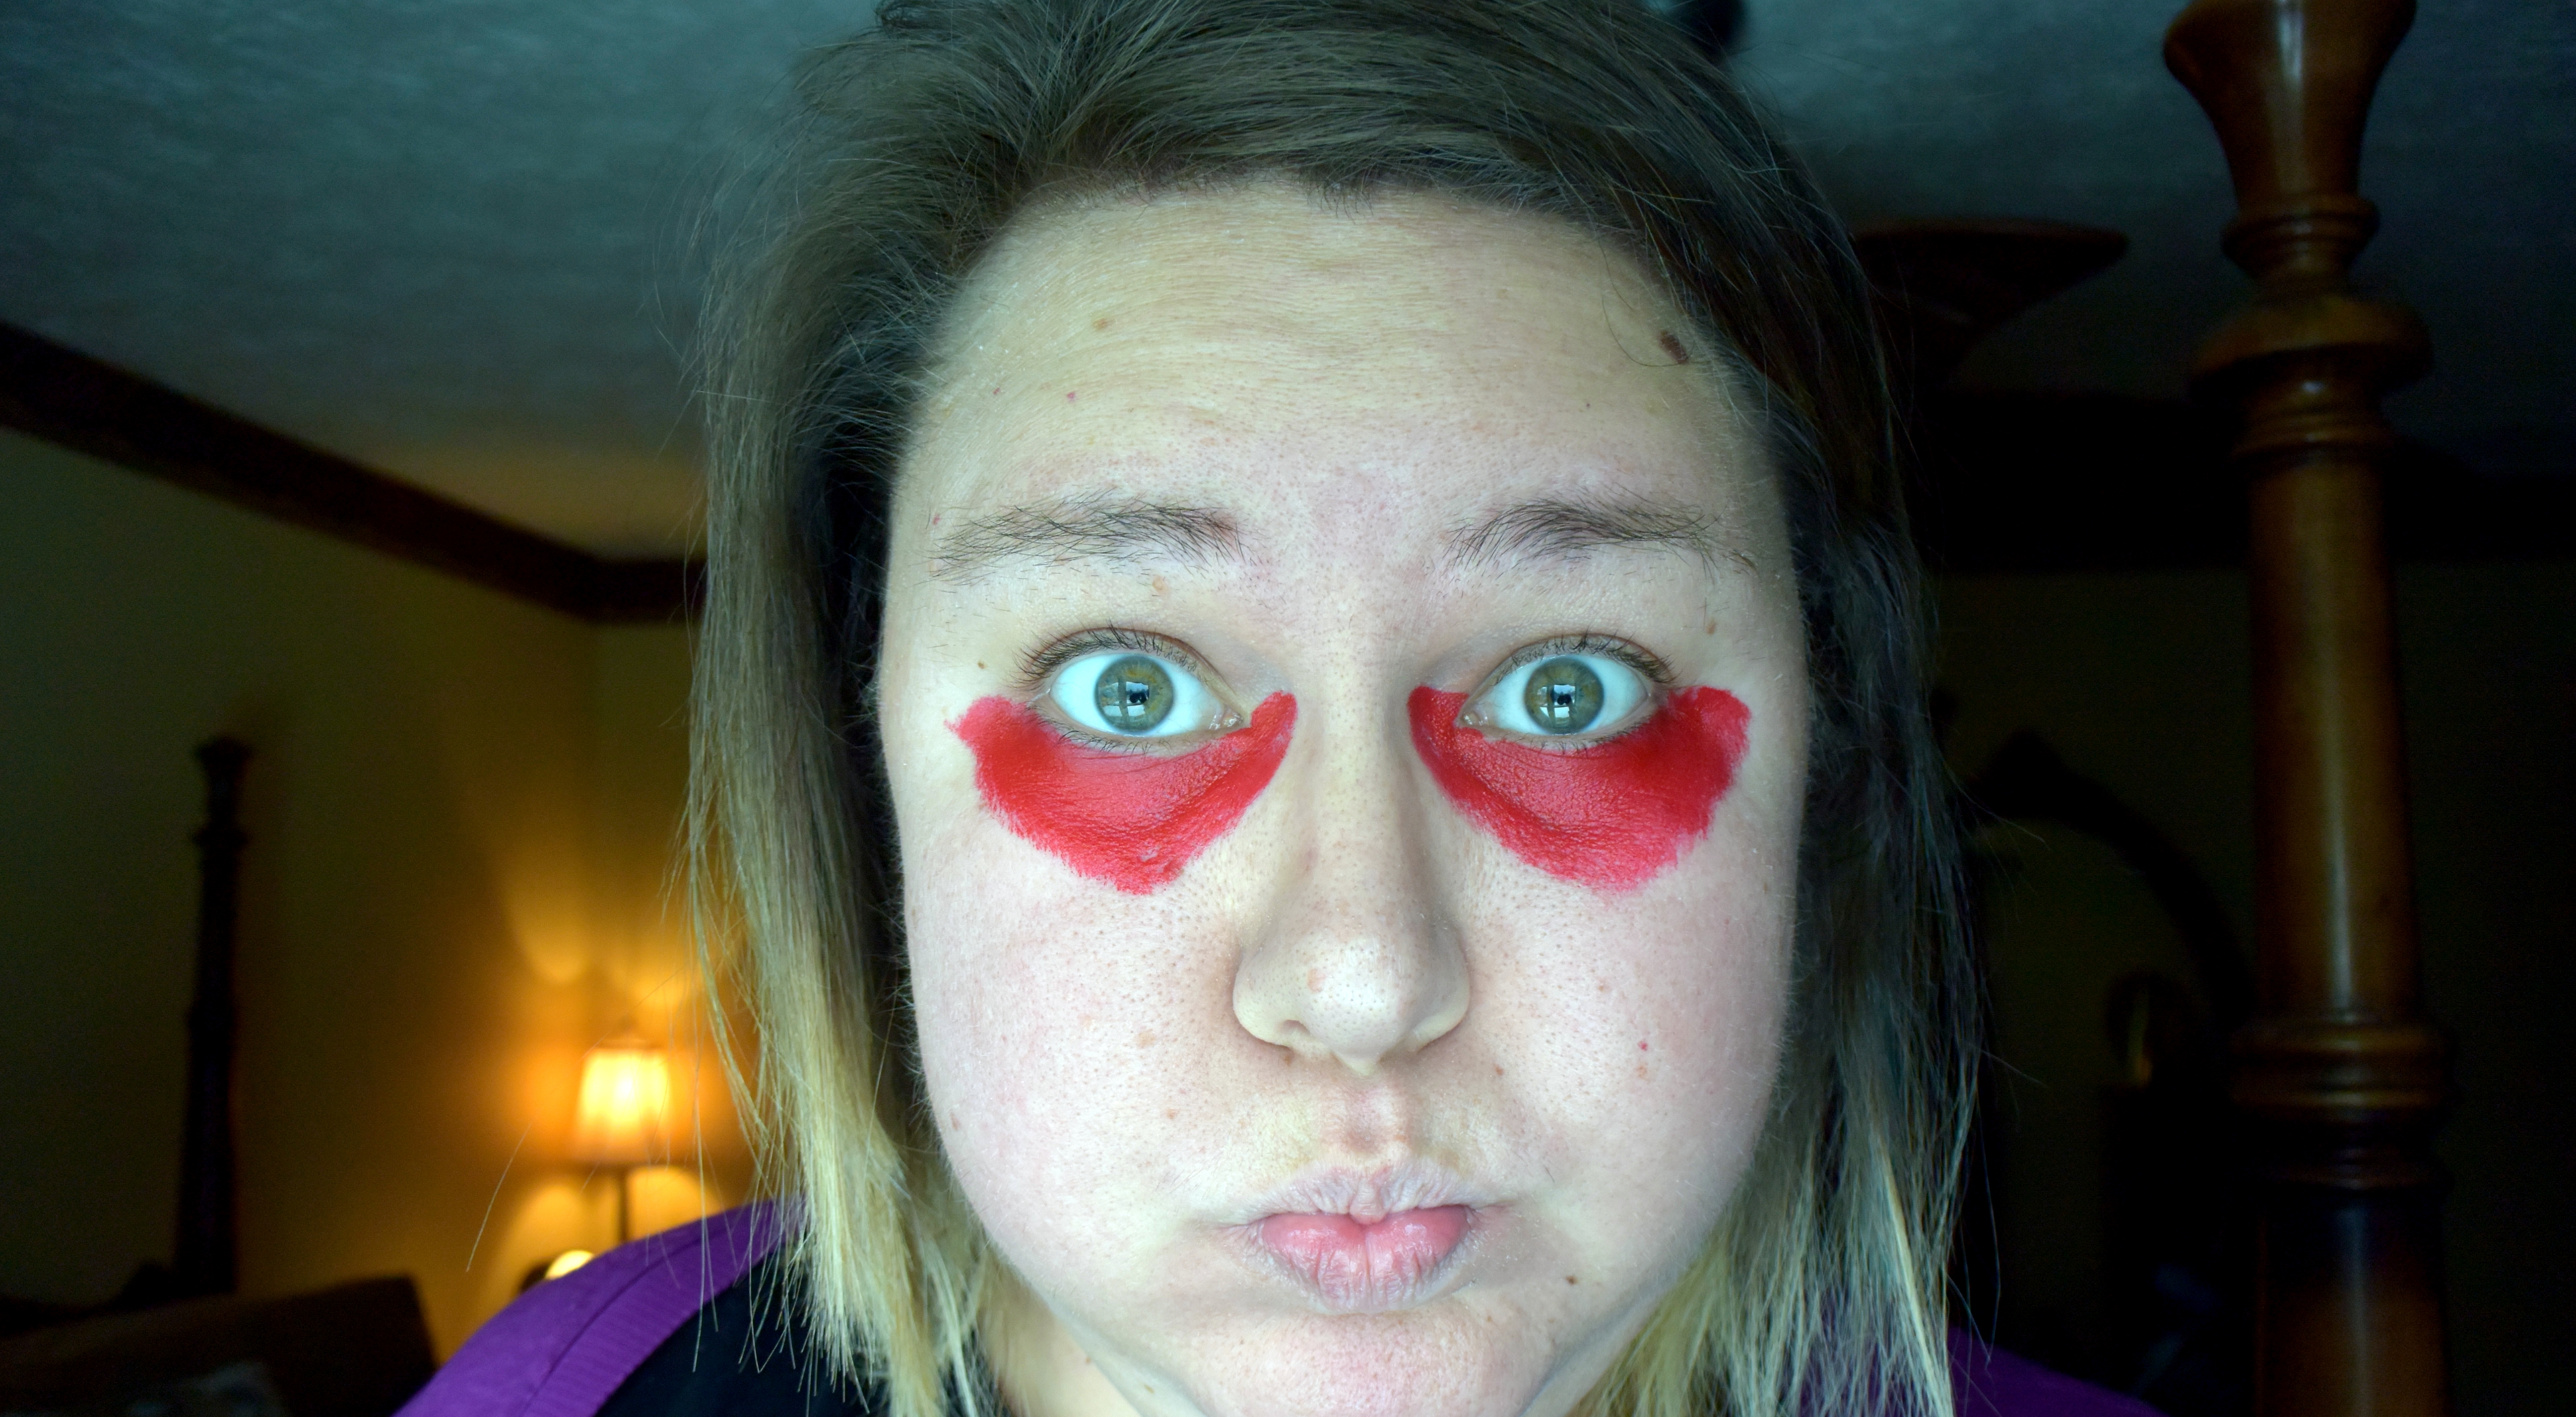 Does Red Lipstick Cover Dark Under Eye Circles? : BlogHer